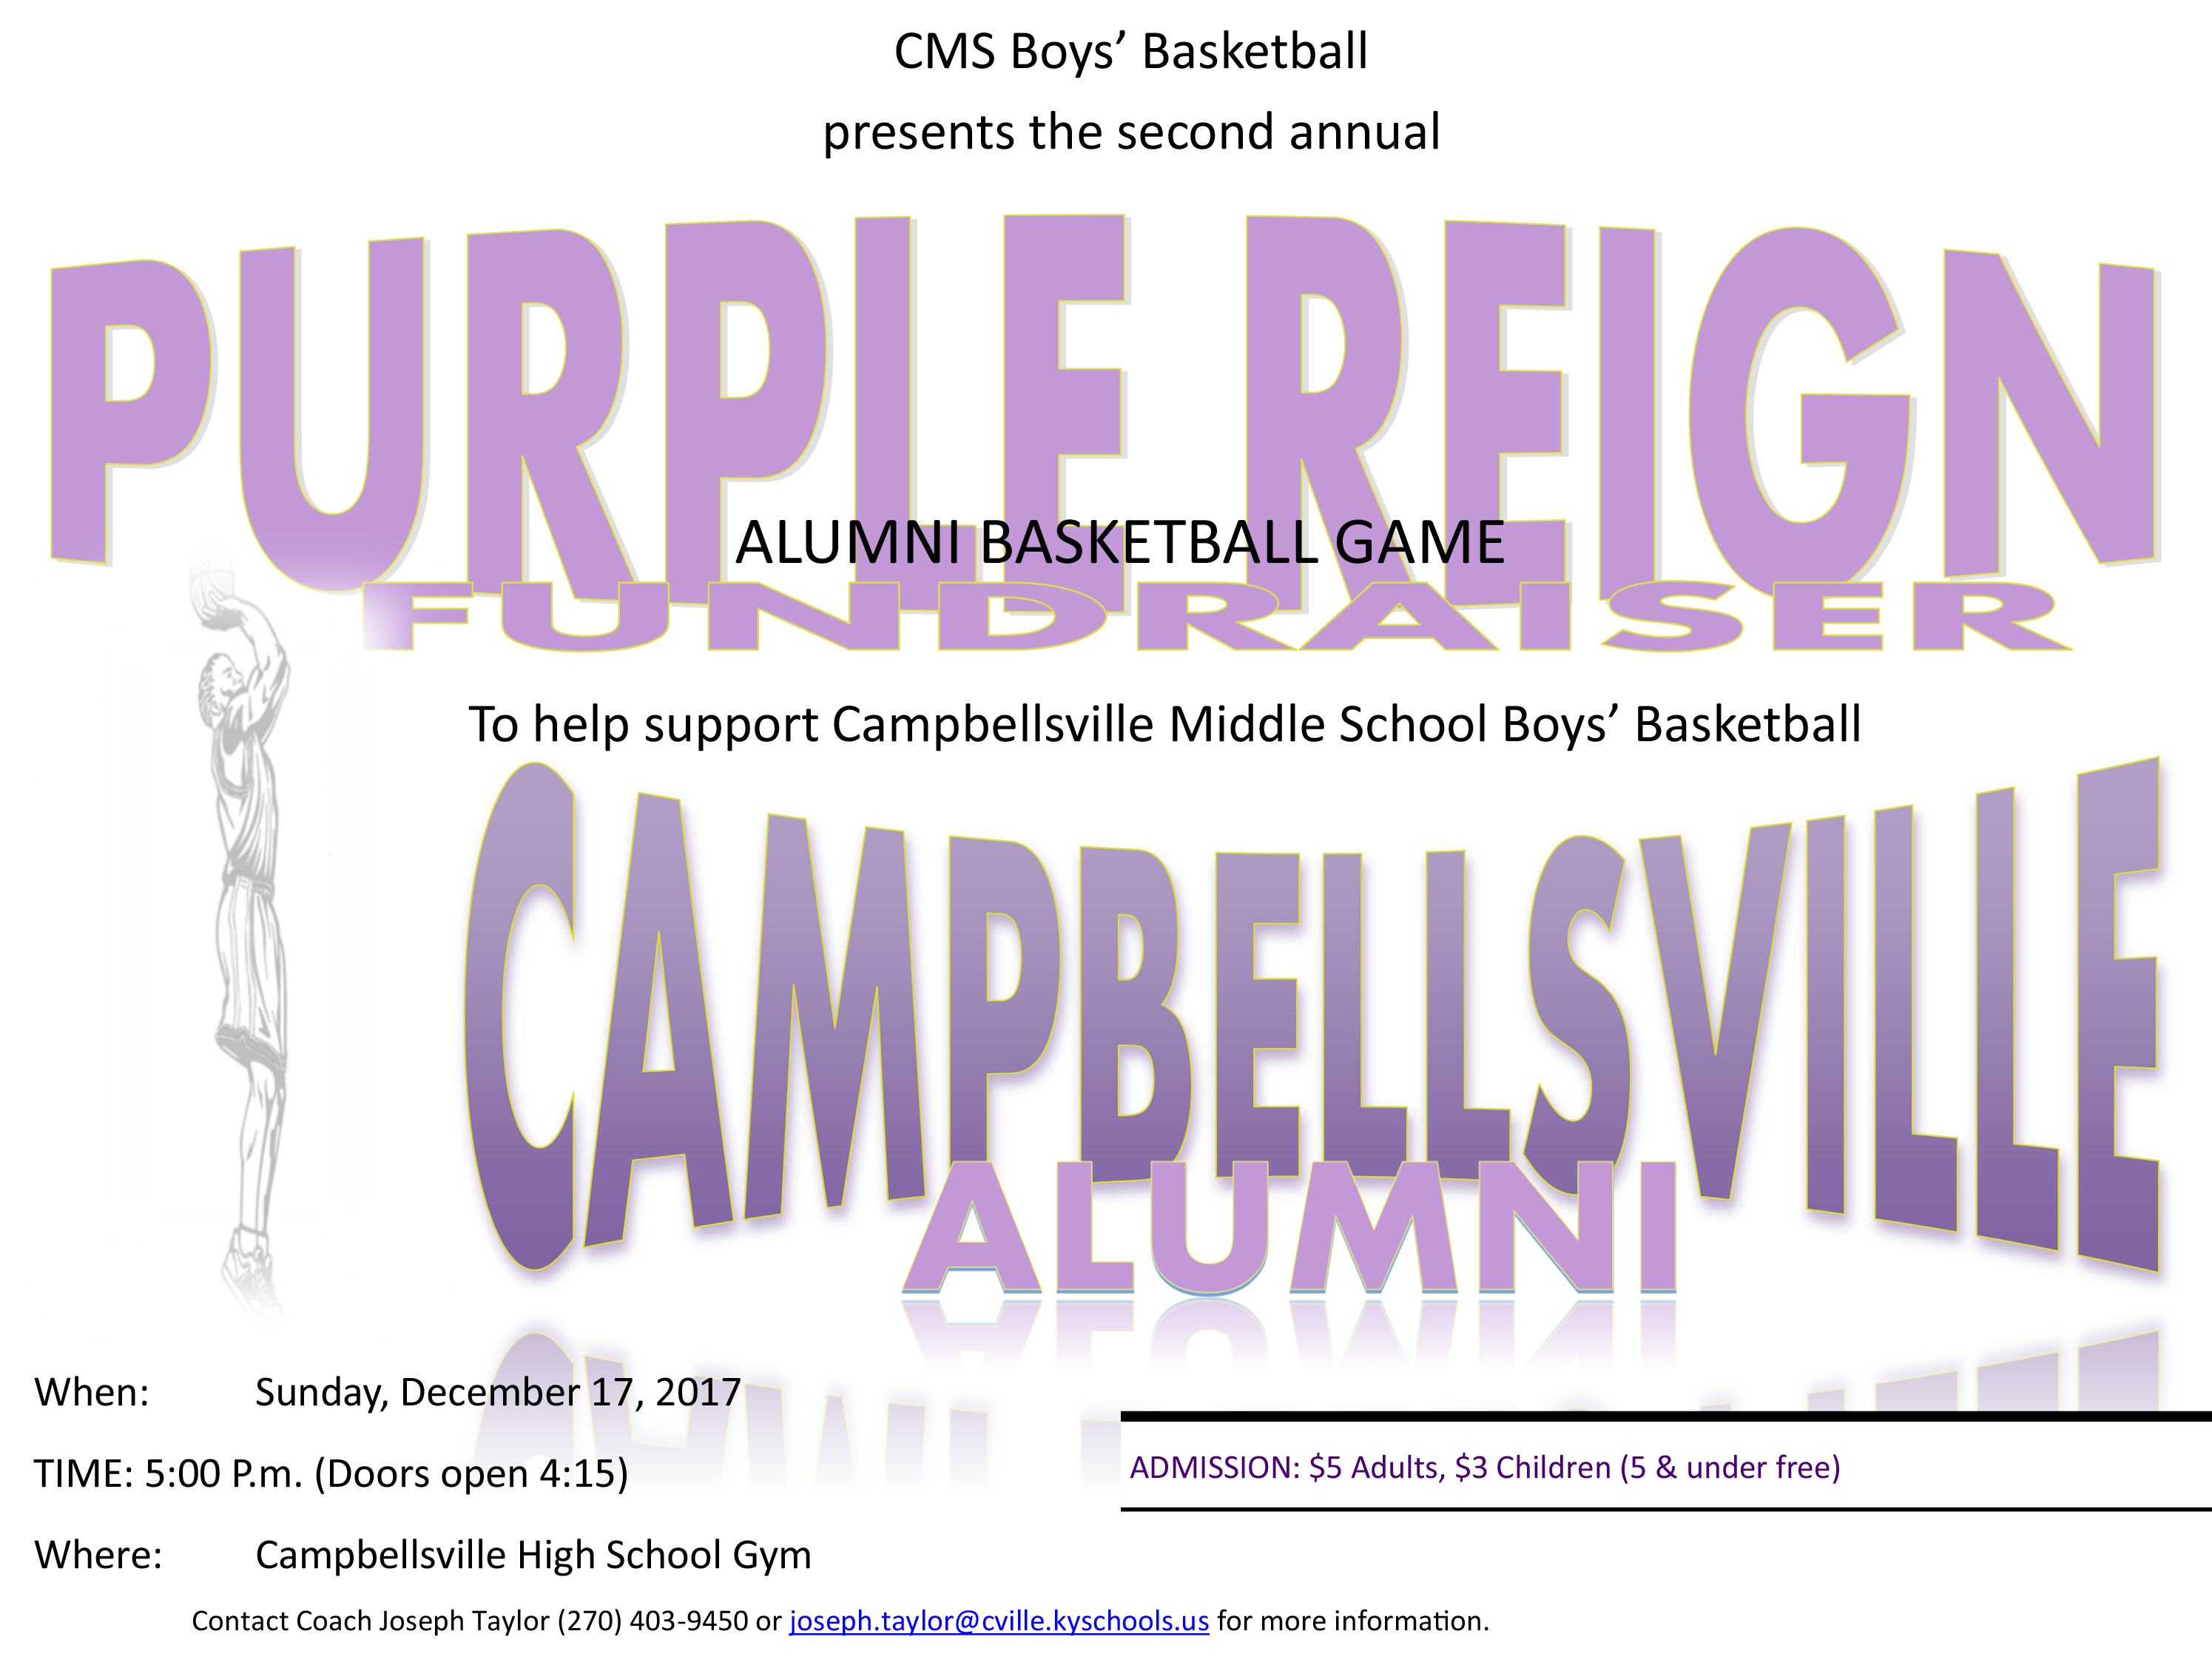 CMS boys' basketball team to host second alumni game